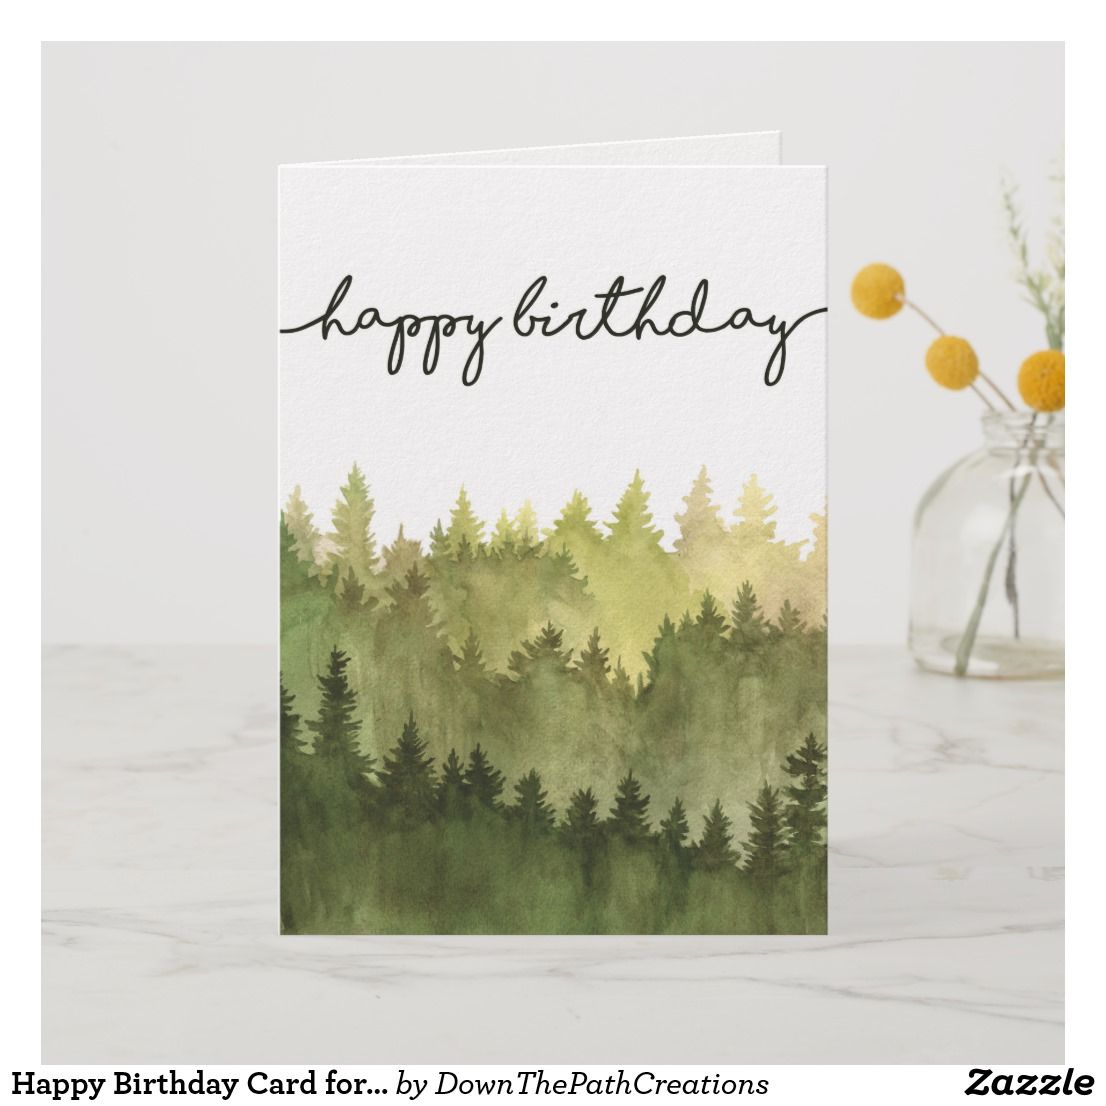 Happy Birthday Card For Him Watercolor Pine Trees Cardsfunny Cardsgreeting Cardshappy Cardbirthday Greeting Cardsonline